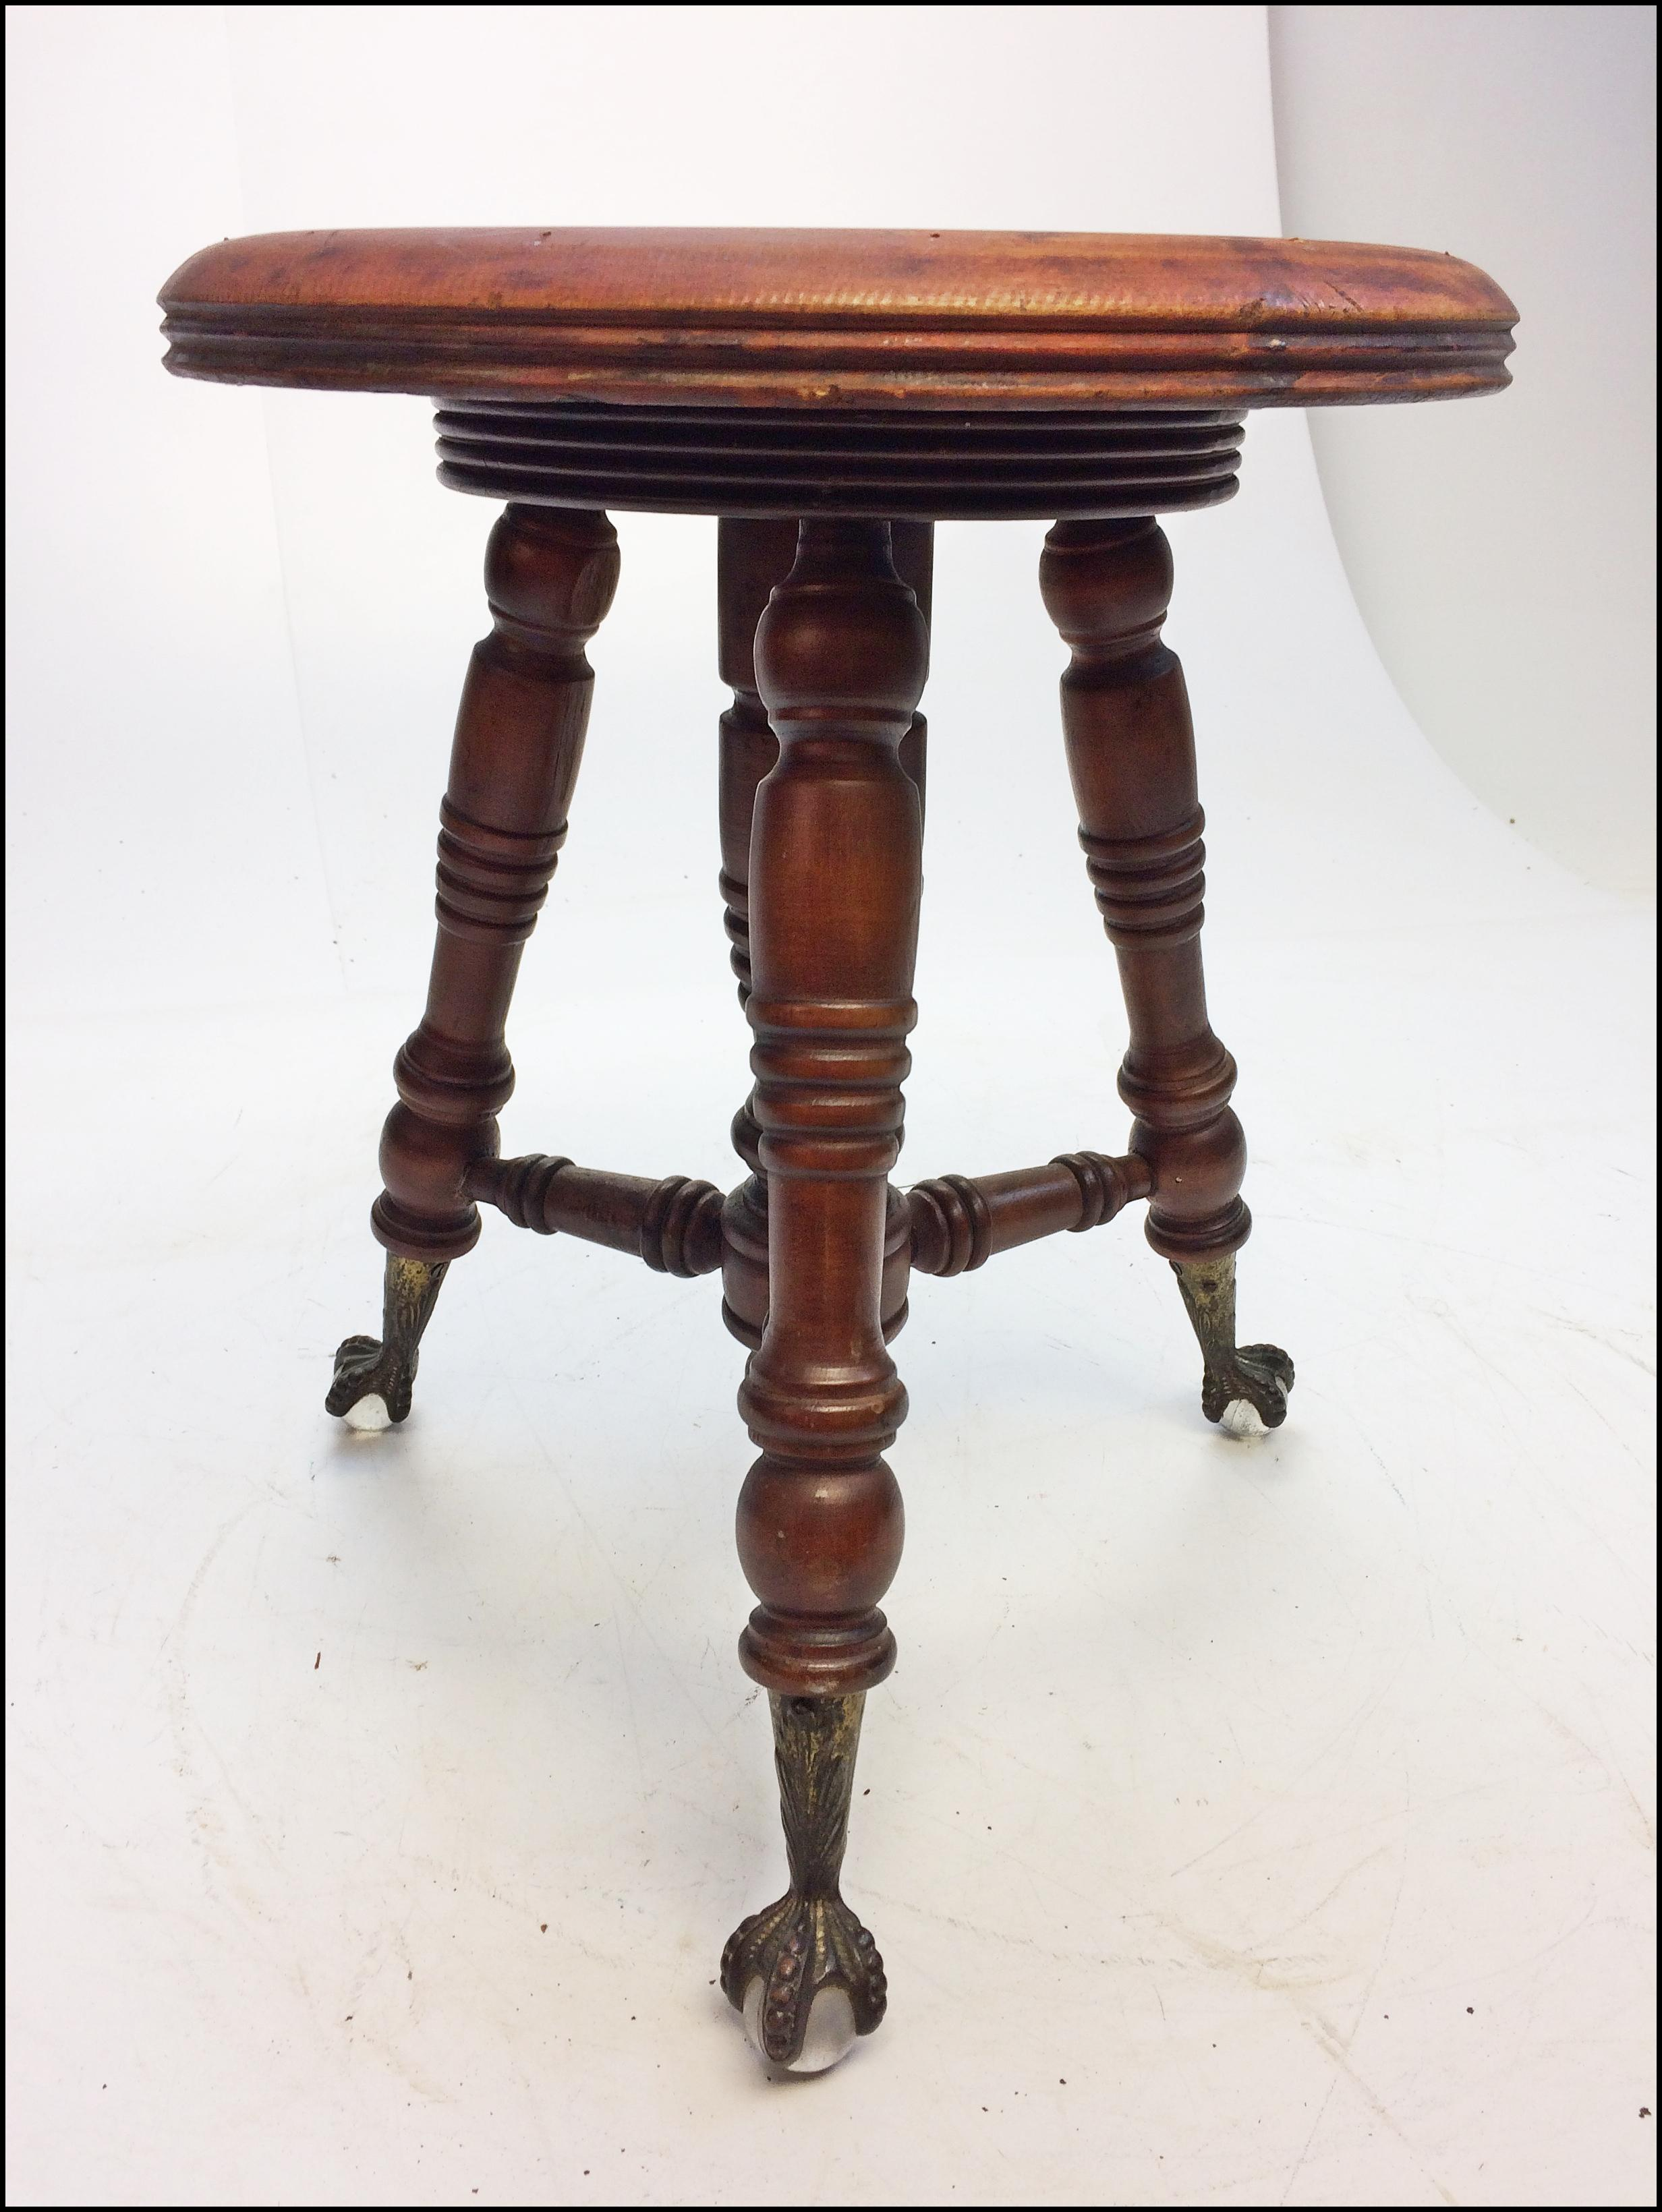 Victorian Carved Wood Piano Stool with Ball u0026 Claw Feet - Image 7 of 11  sc 1 st  Chairish & Victorian Carved Wood Piano Stool with Ball u0026 Claw Feet | Chairish islam-shia.org